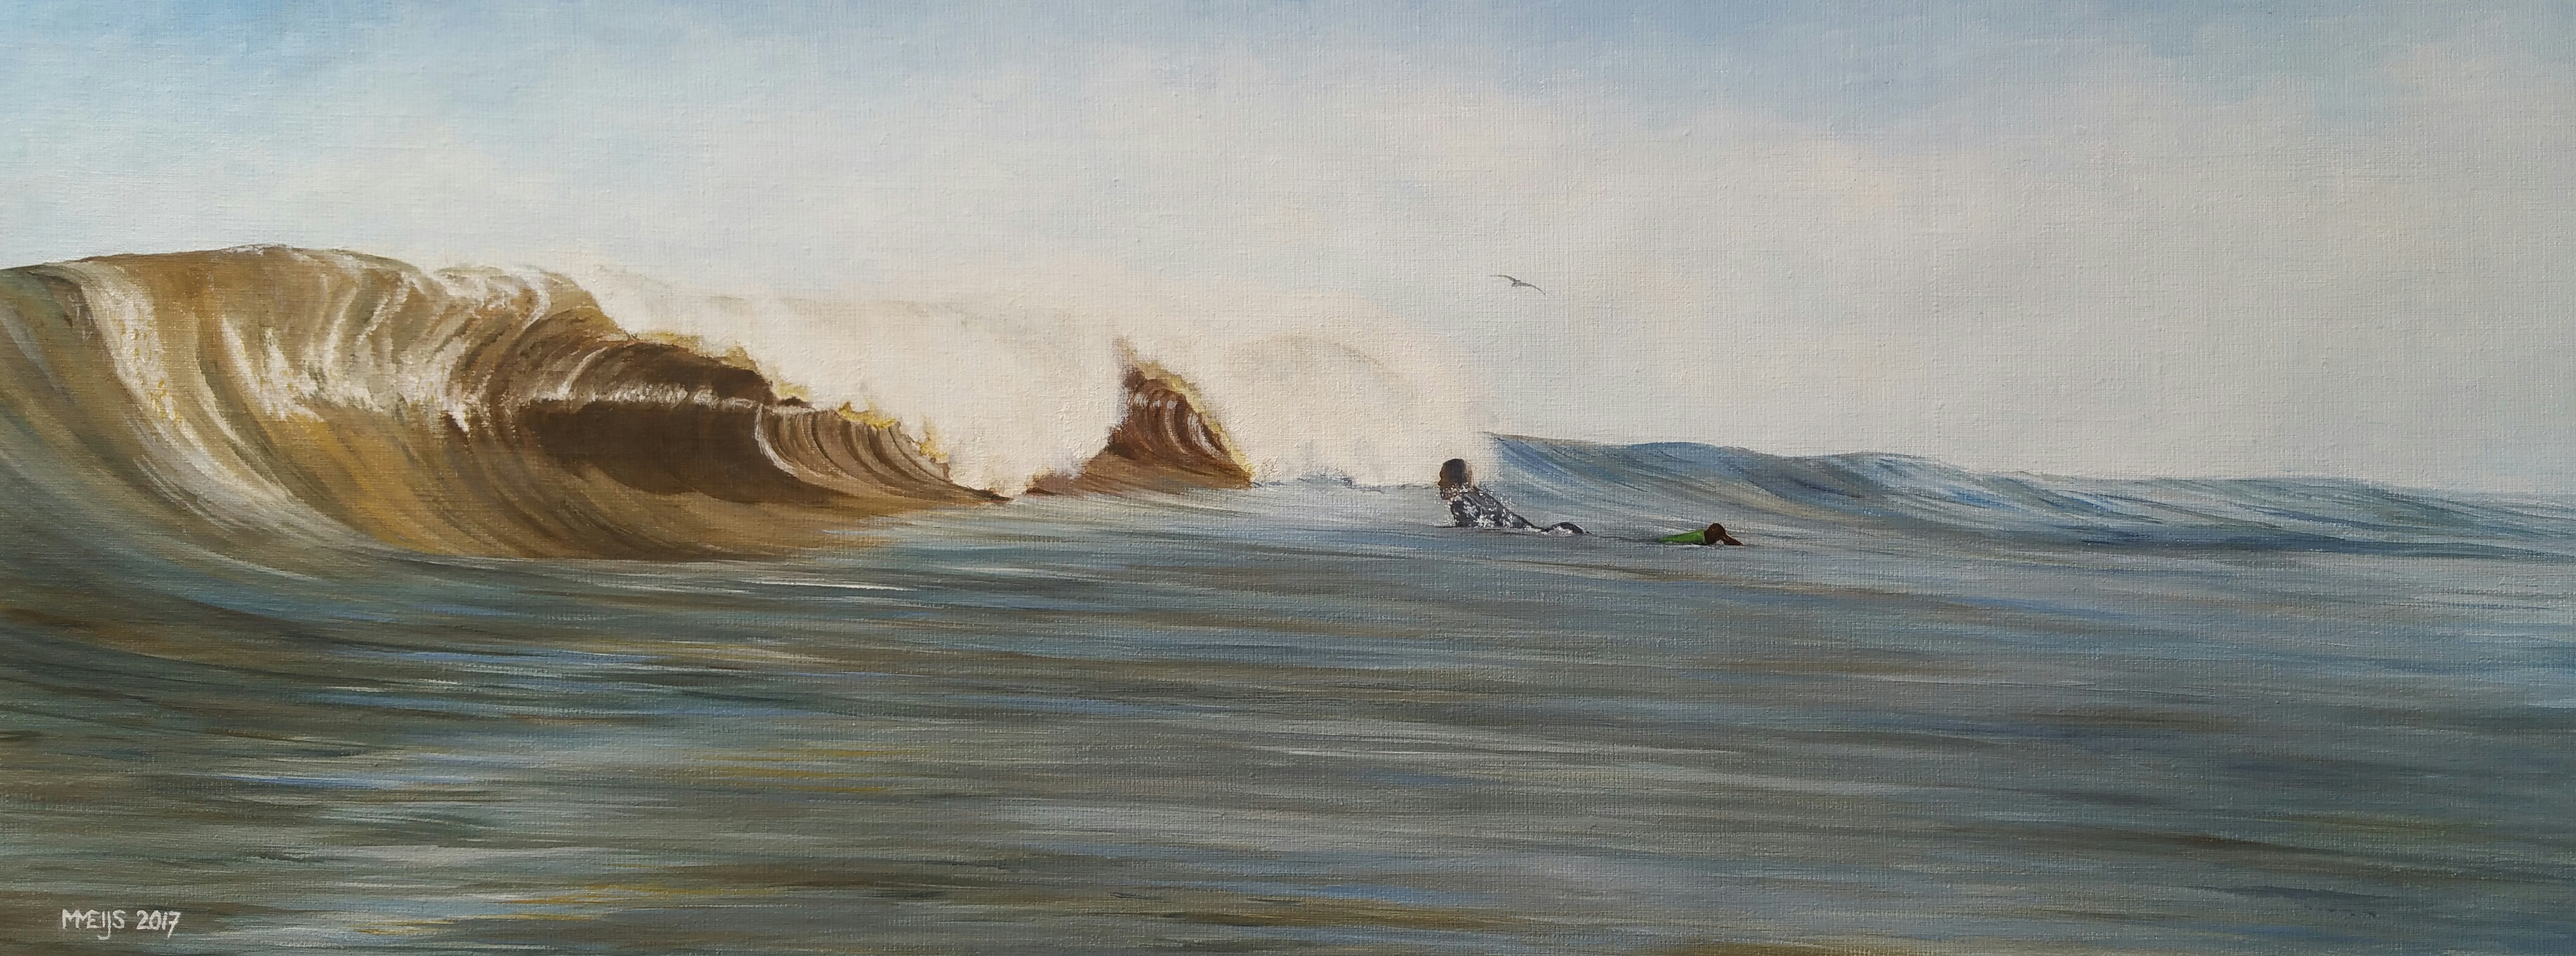 SurfArt original painting Dutch barrels